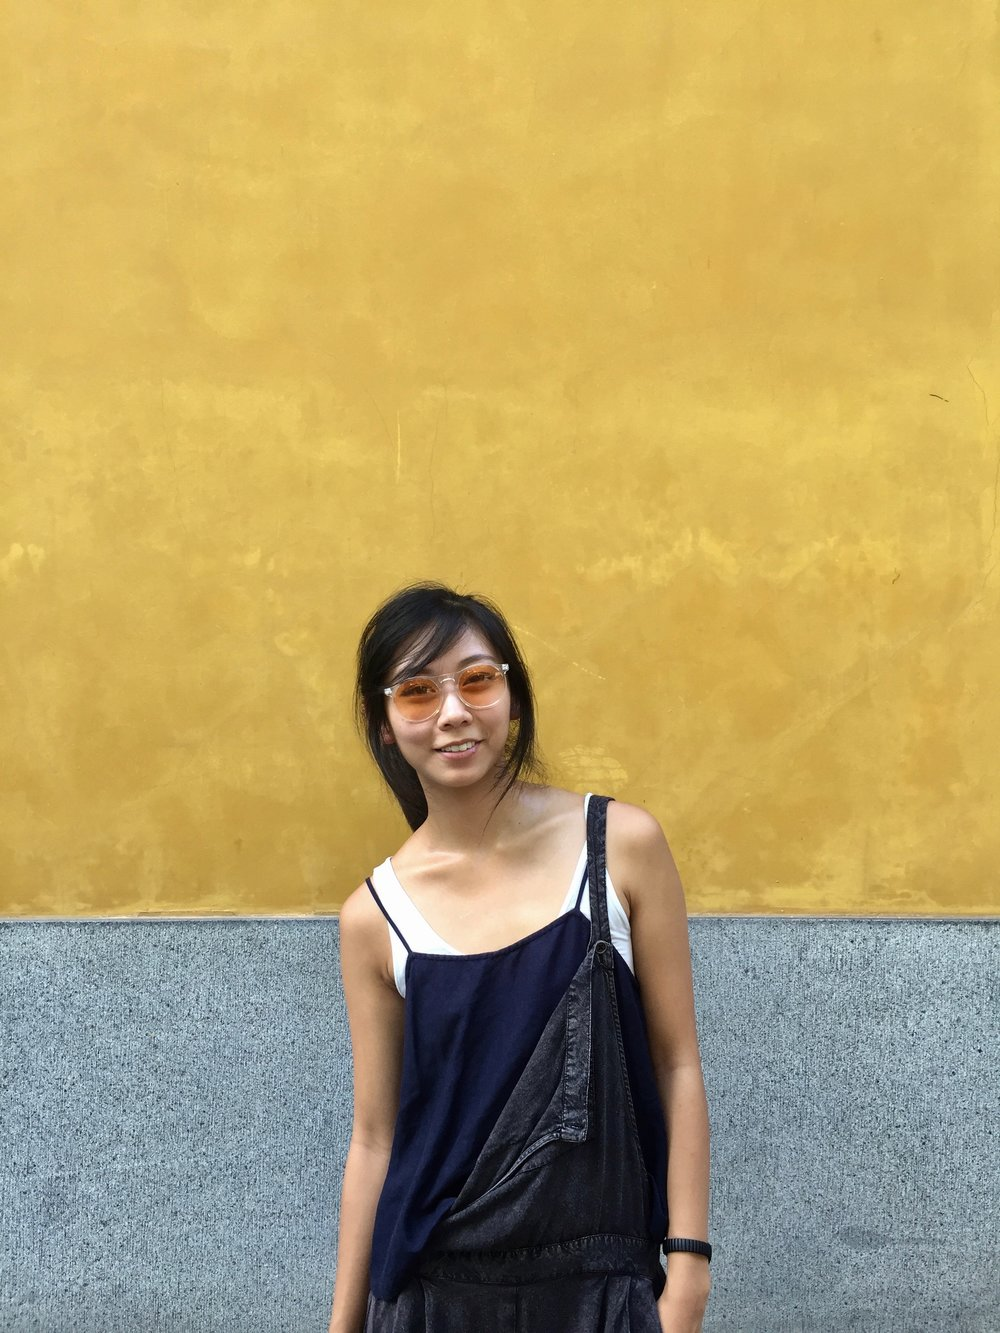 style travel blogger in china yellow background contrast